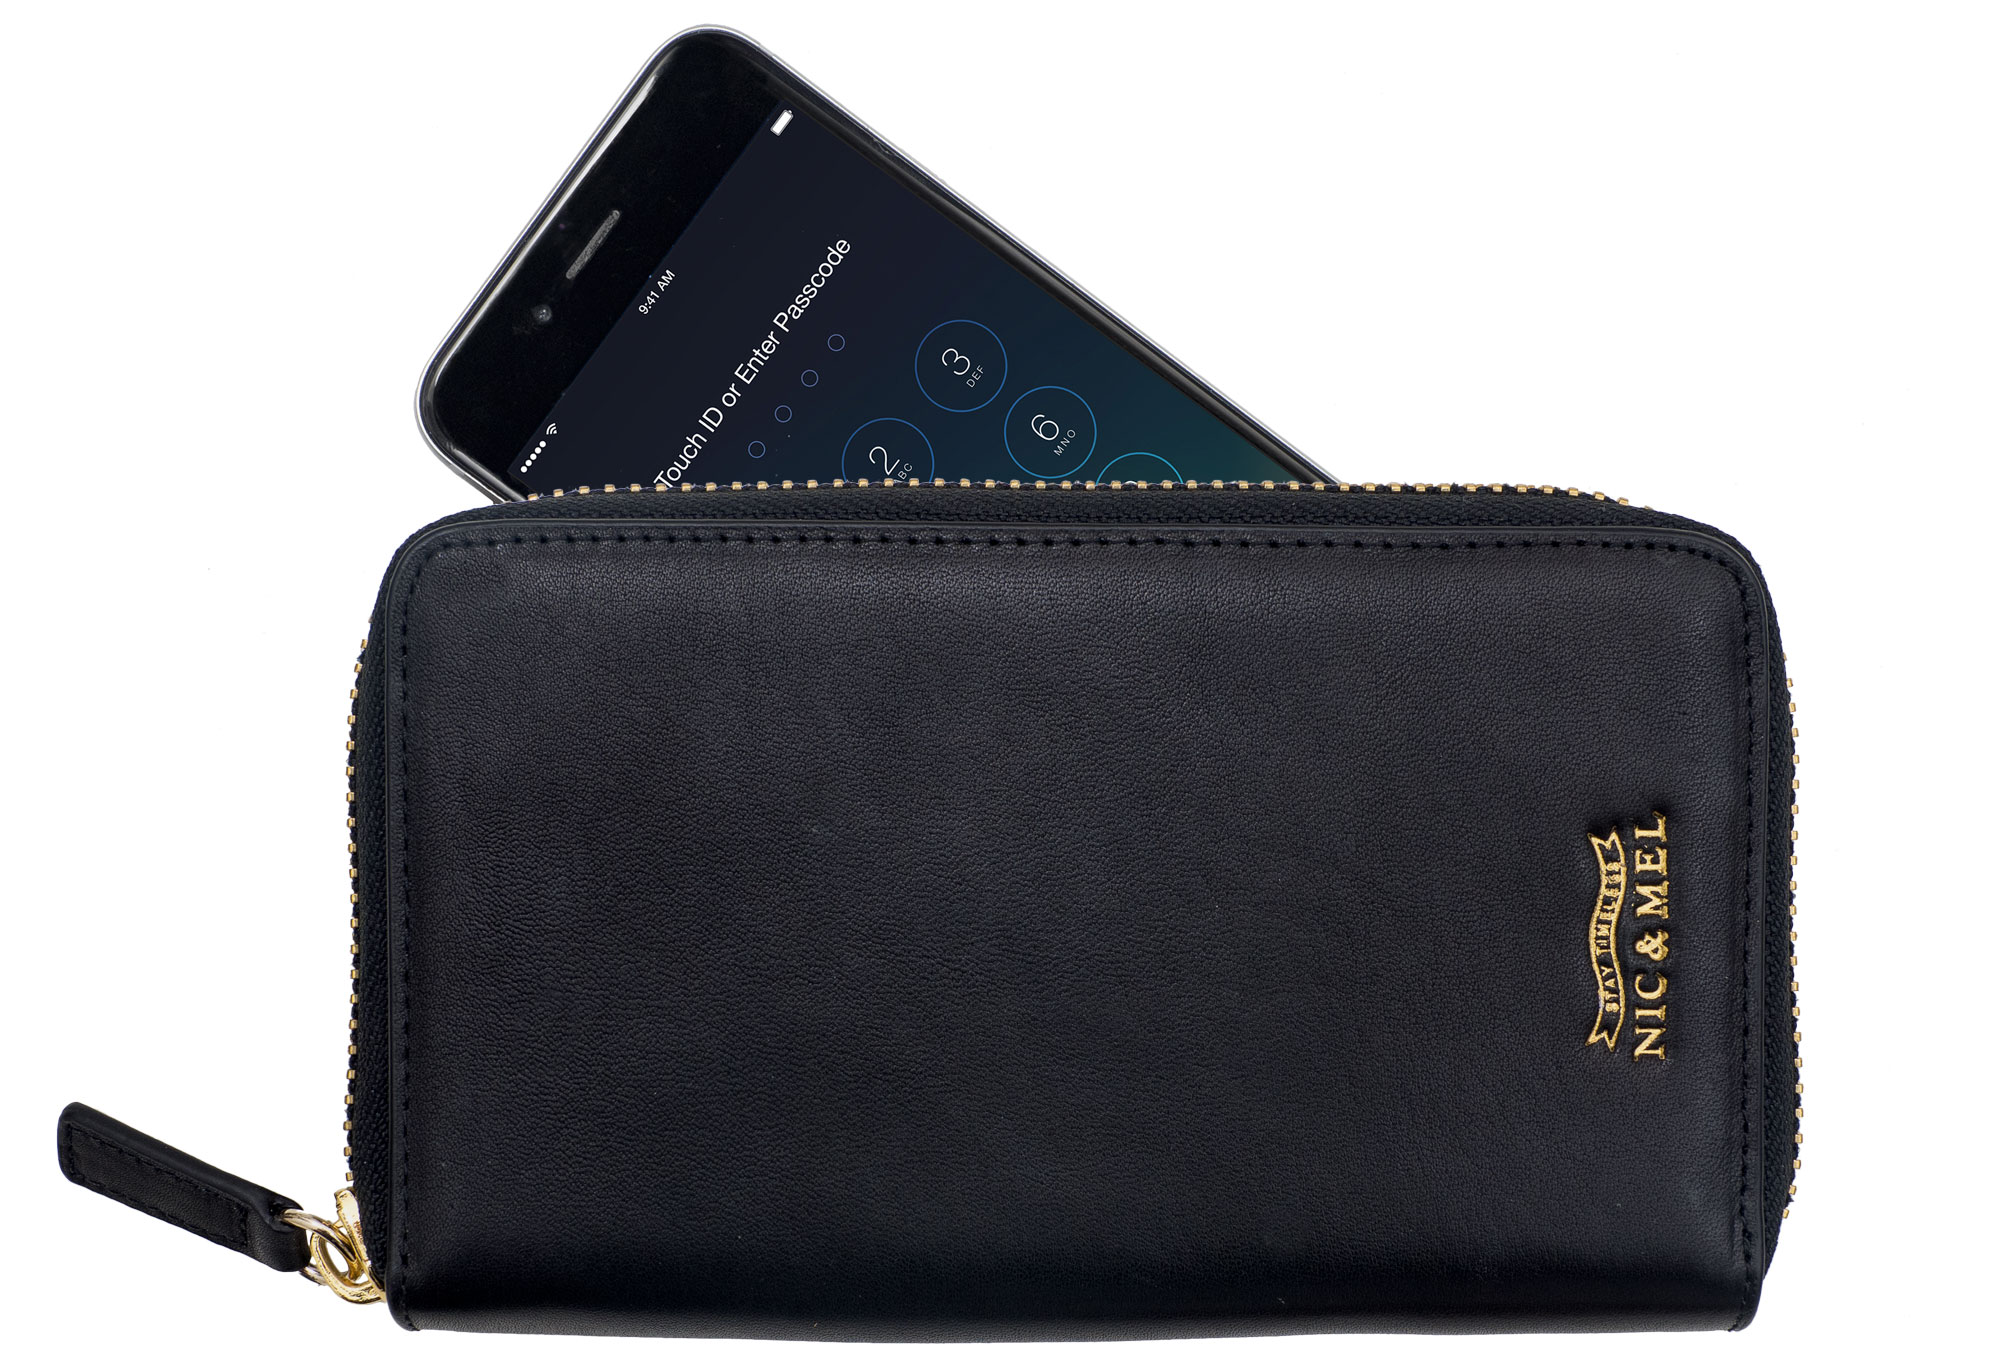 JILL PHONE WALLET <br>Black Leather <br>For All Phones